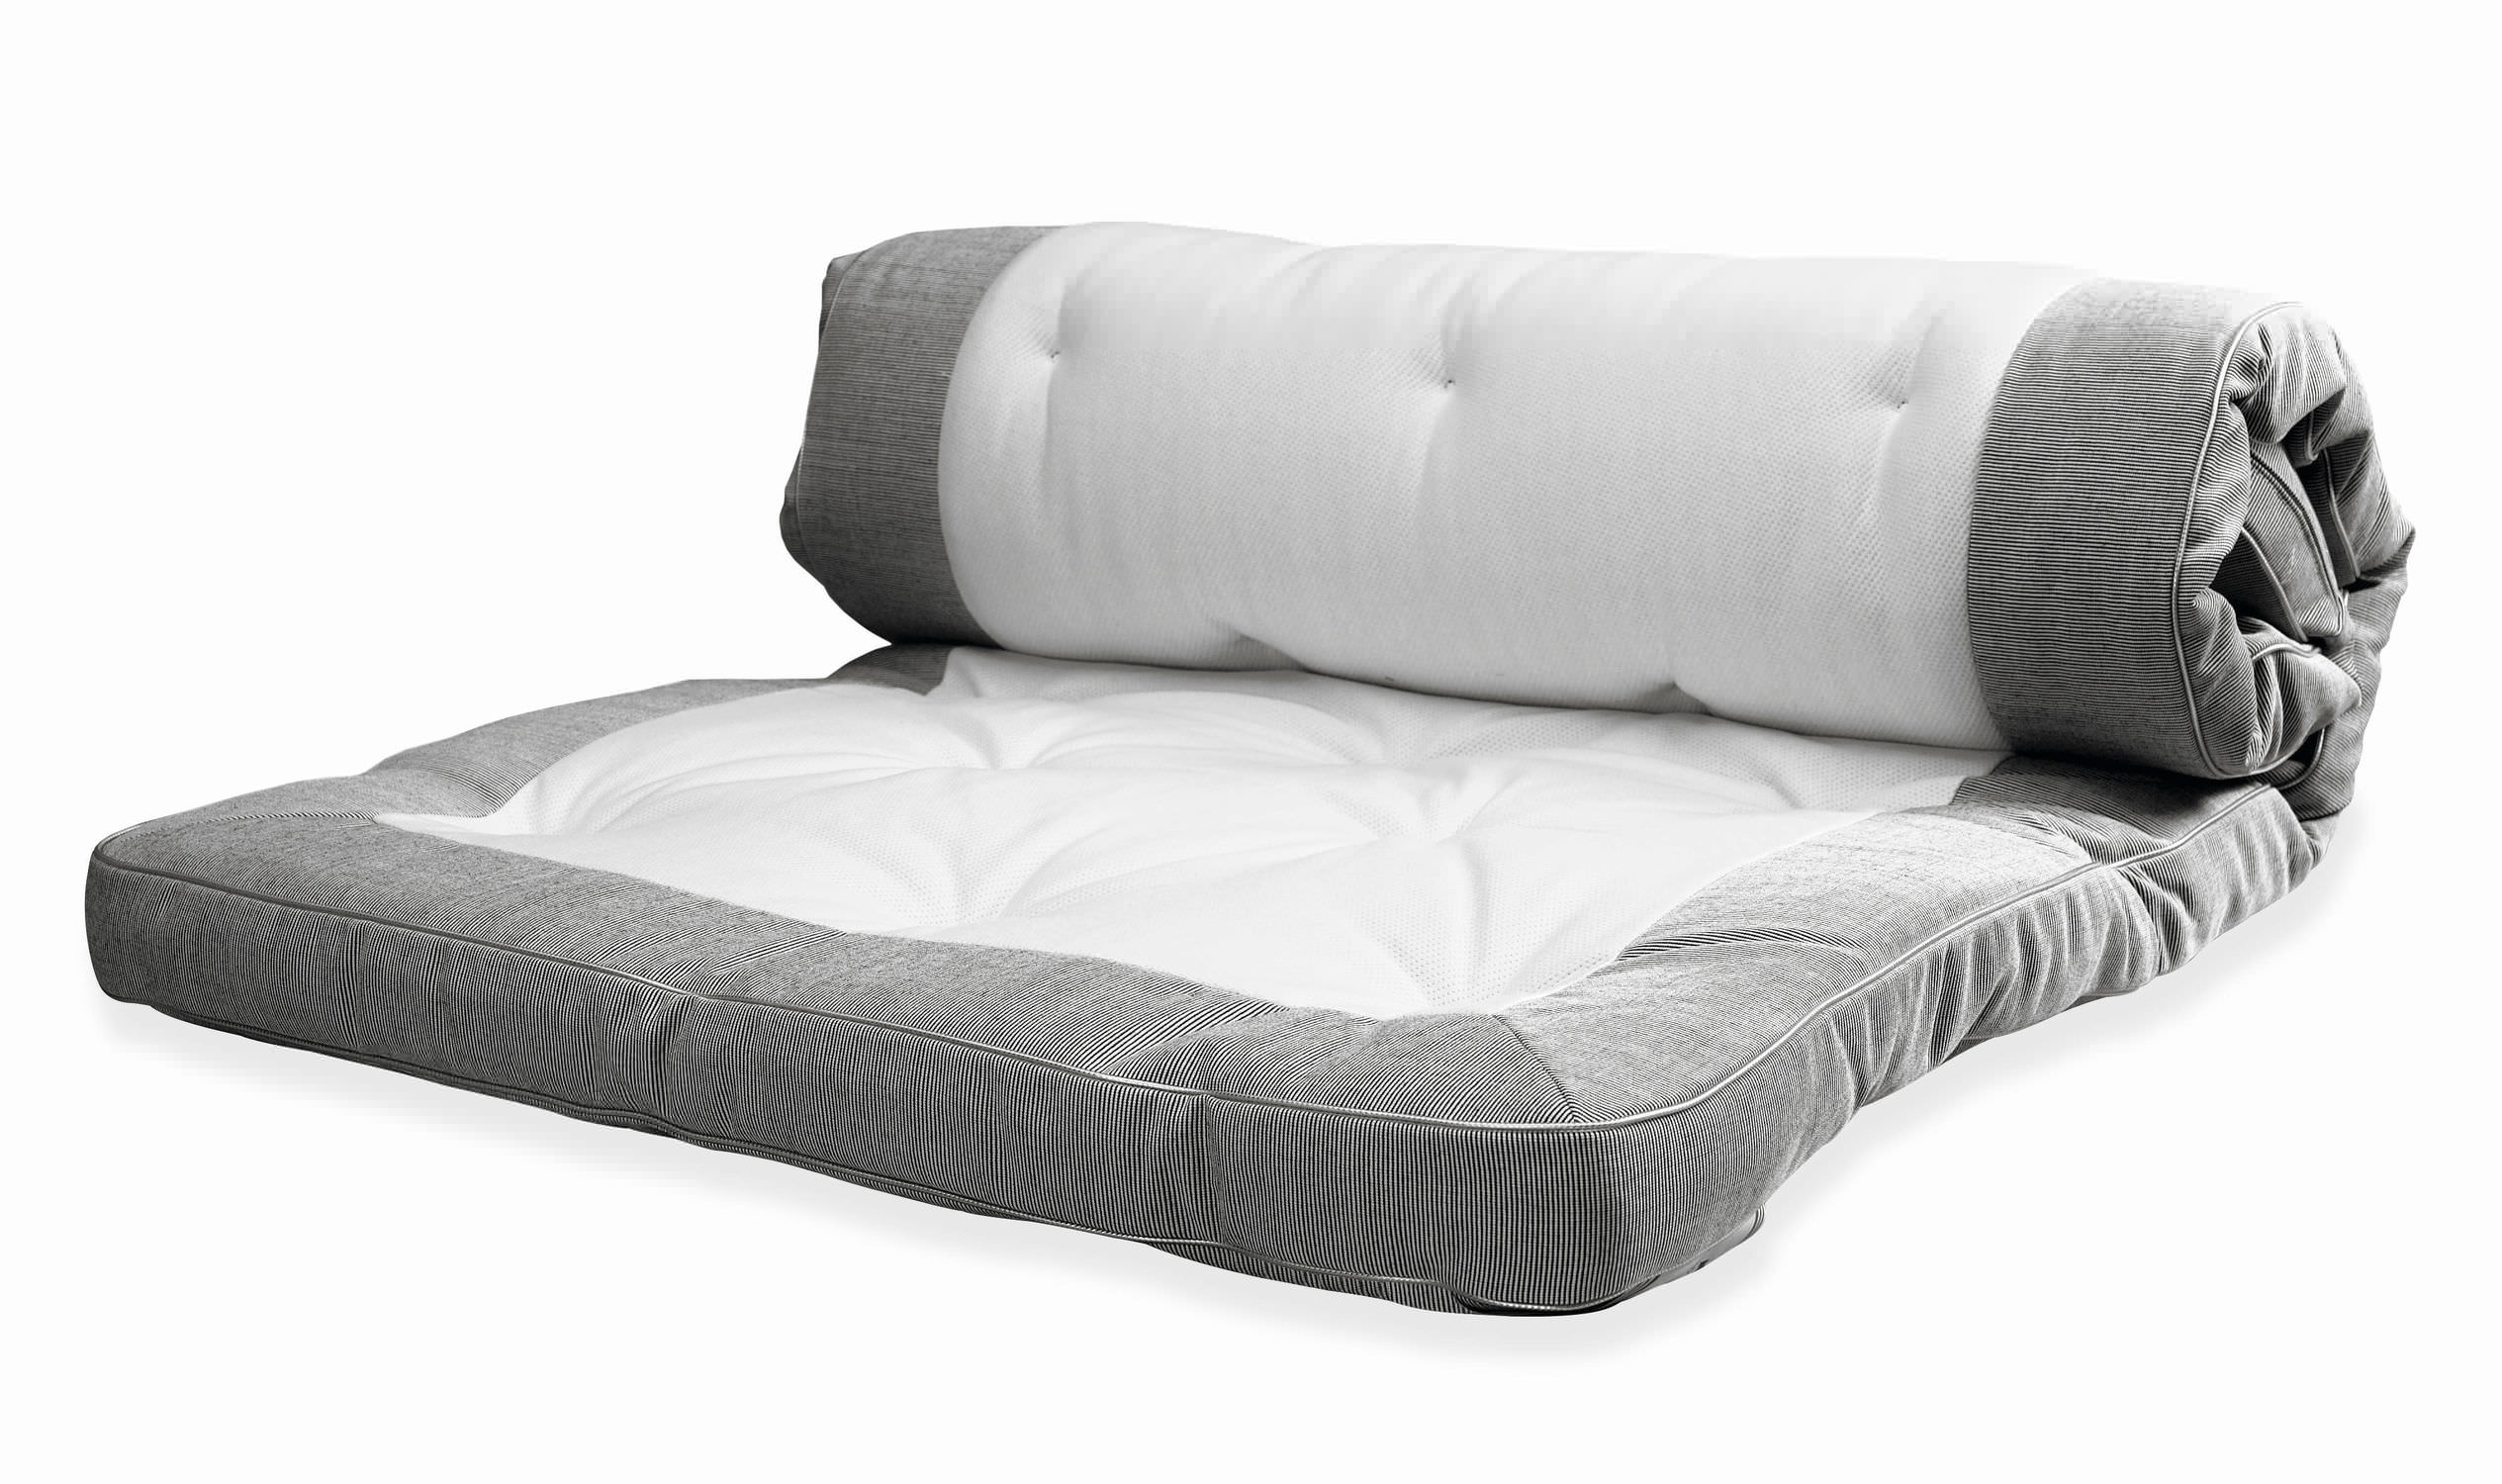 "What Is The Best Price For Fully Reversible (Double Life)-1"" Down Alternative Mattress Topper / Pad- W/ Stay Tight Anchor Straps (Queen)"